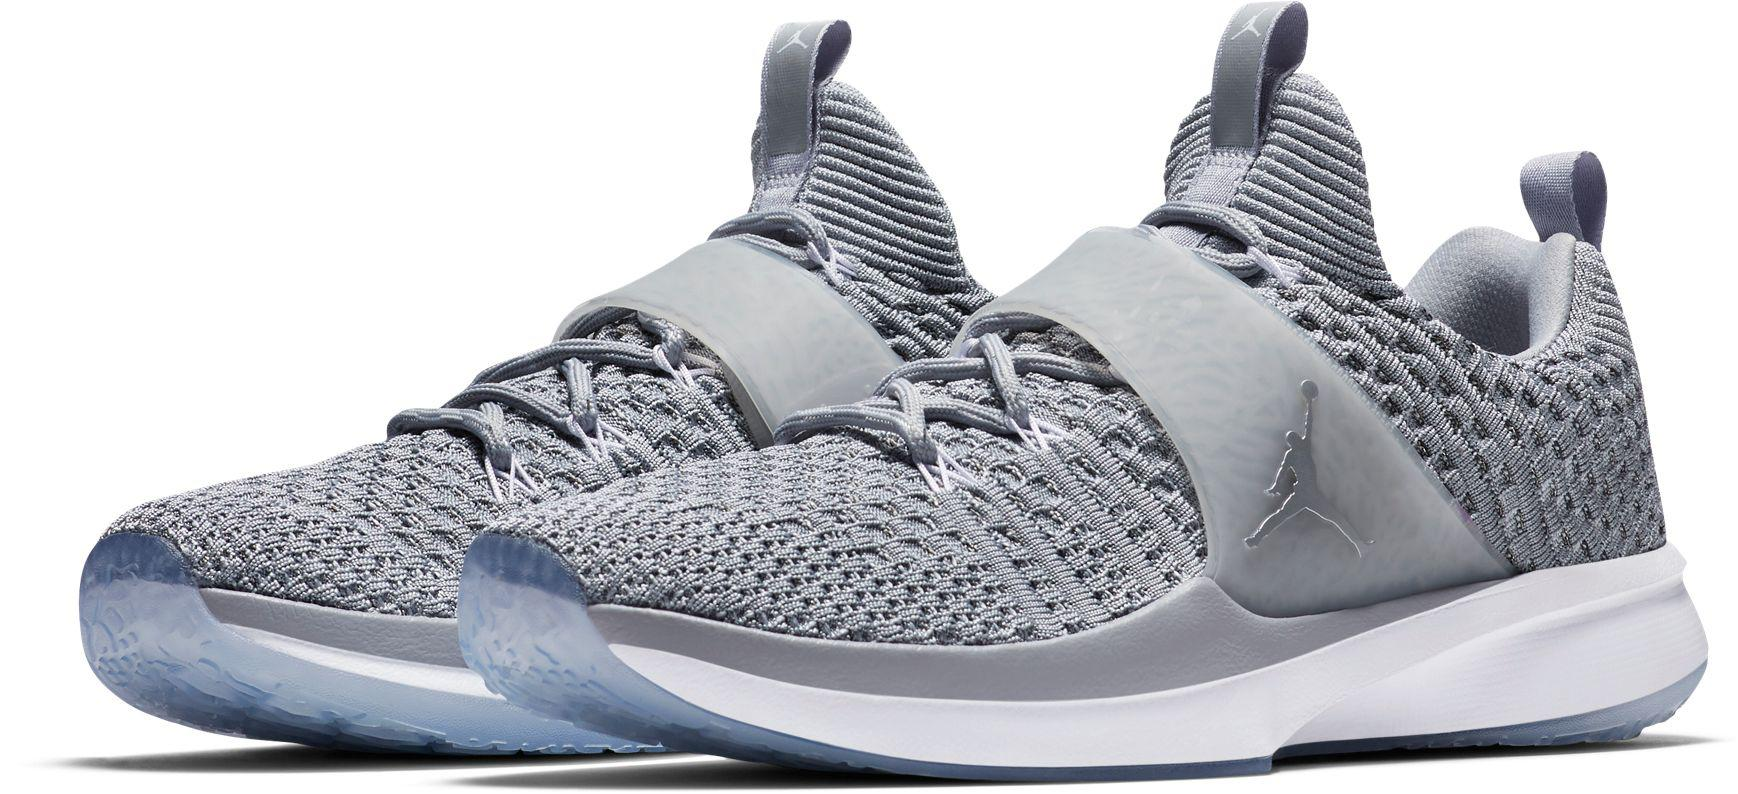 Lyst - Nike Trainer 2 Flyknit Training Shoes in Gray for Men e6dd42d69